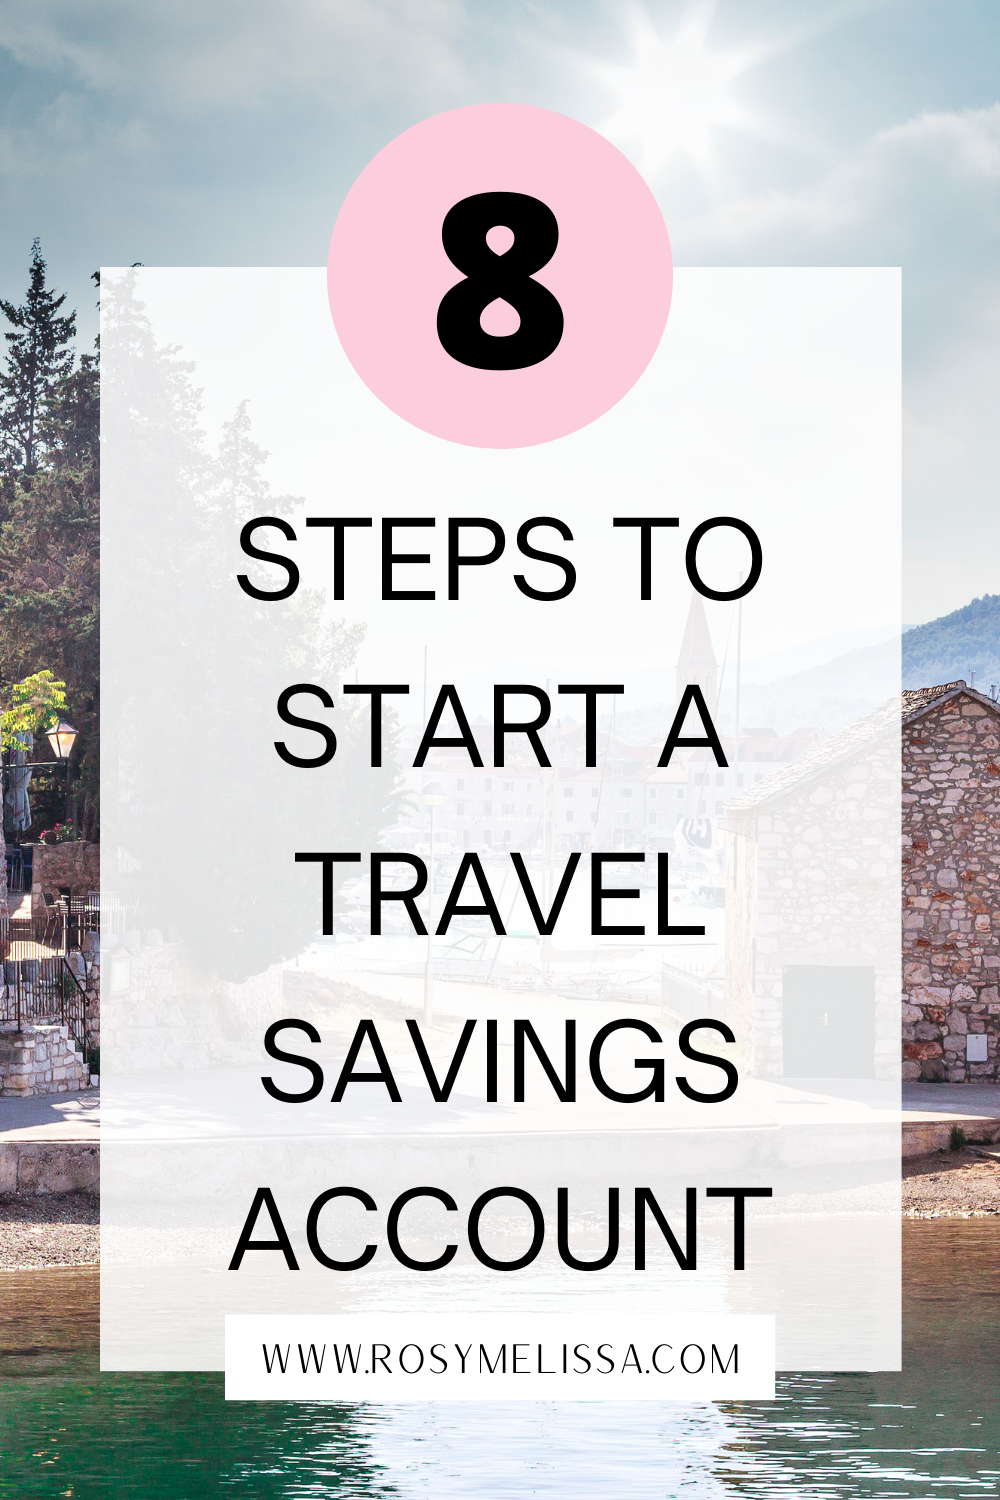 how to start a travel savings account, tips to save money for travelling, how to fund your trip